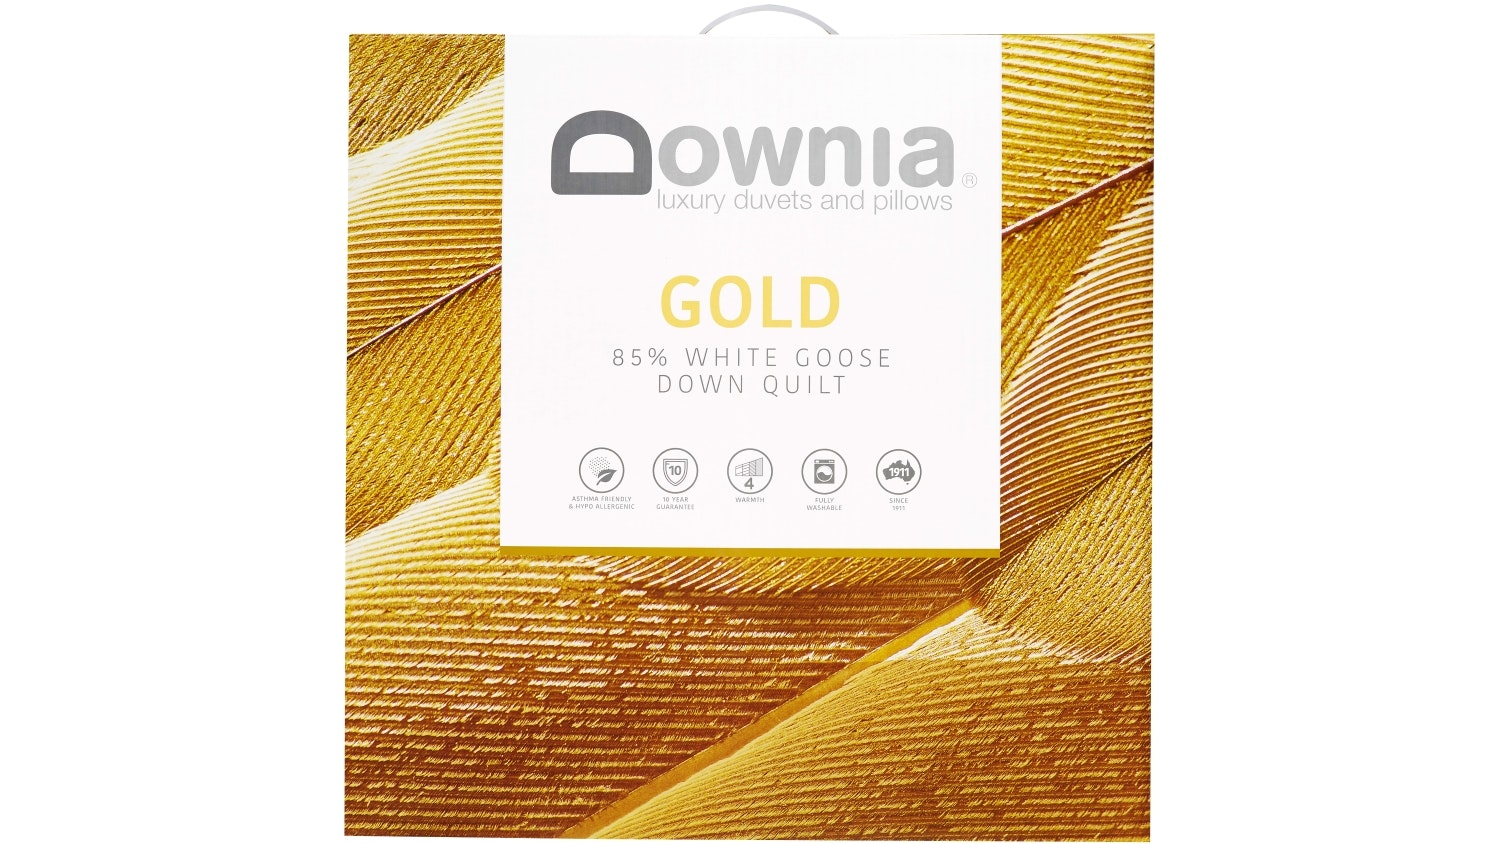 Downia Gold Goose Down Quilt